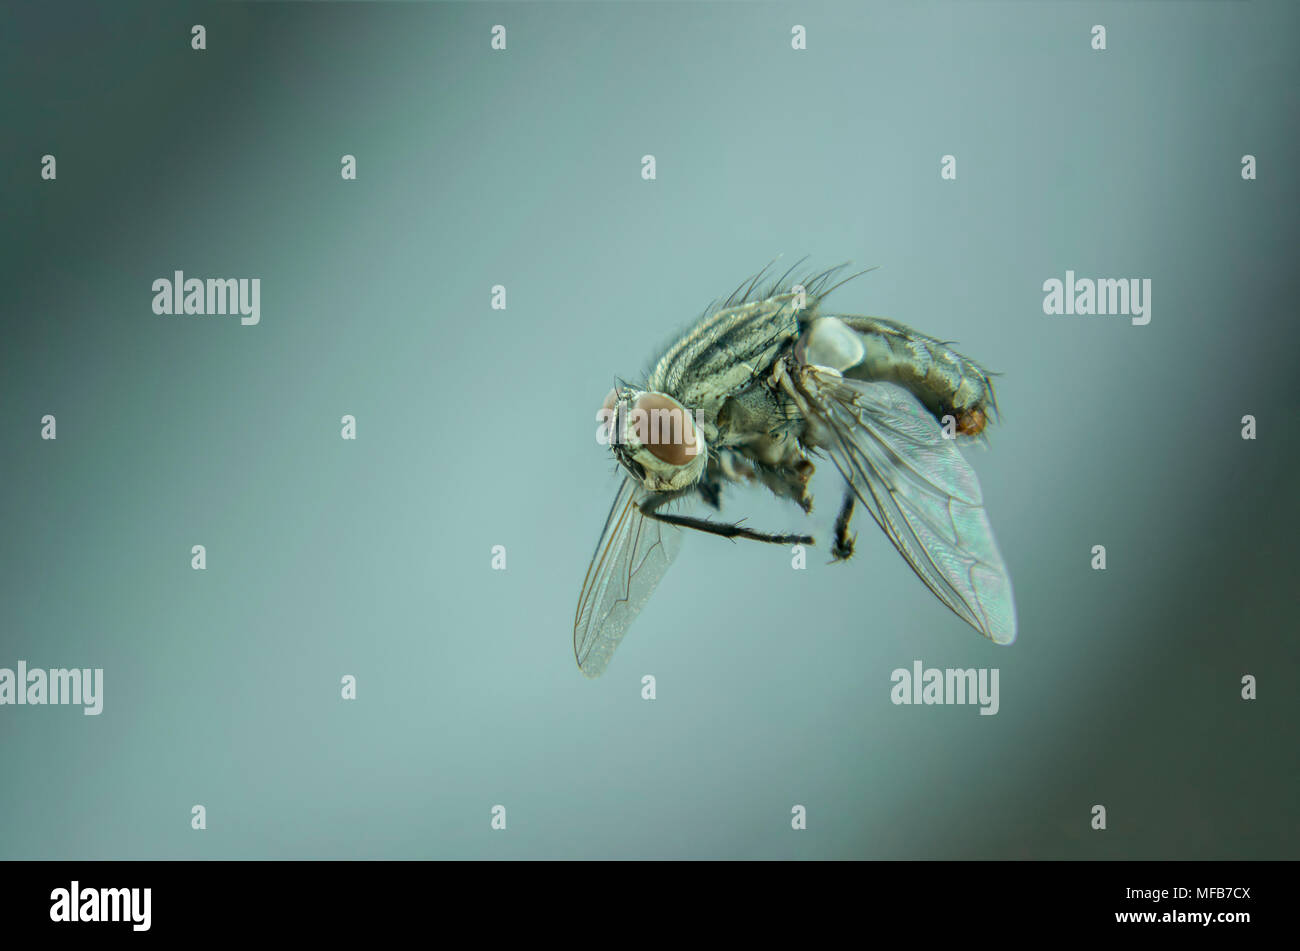 single black fly flying in home - detailed insect - Stock Image